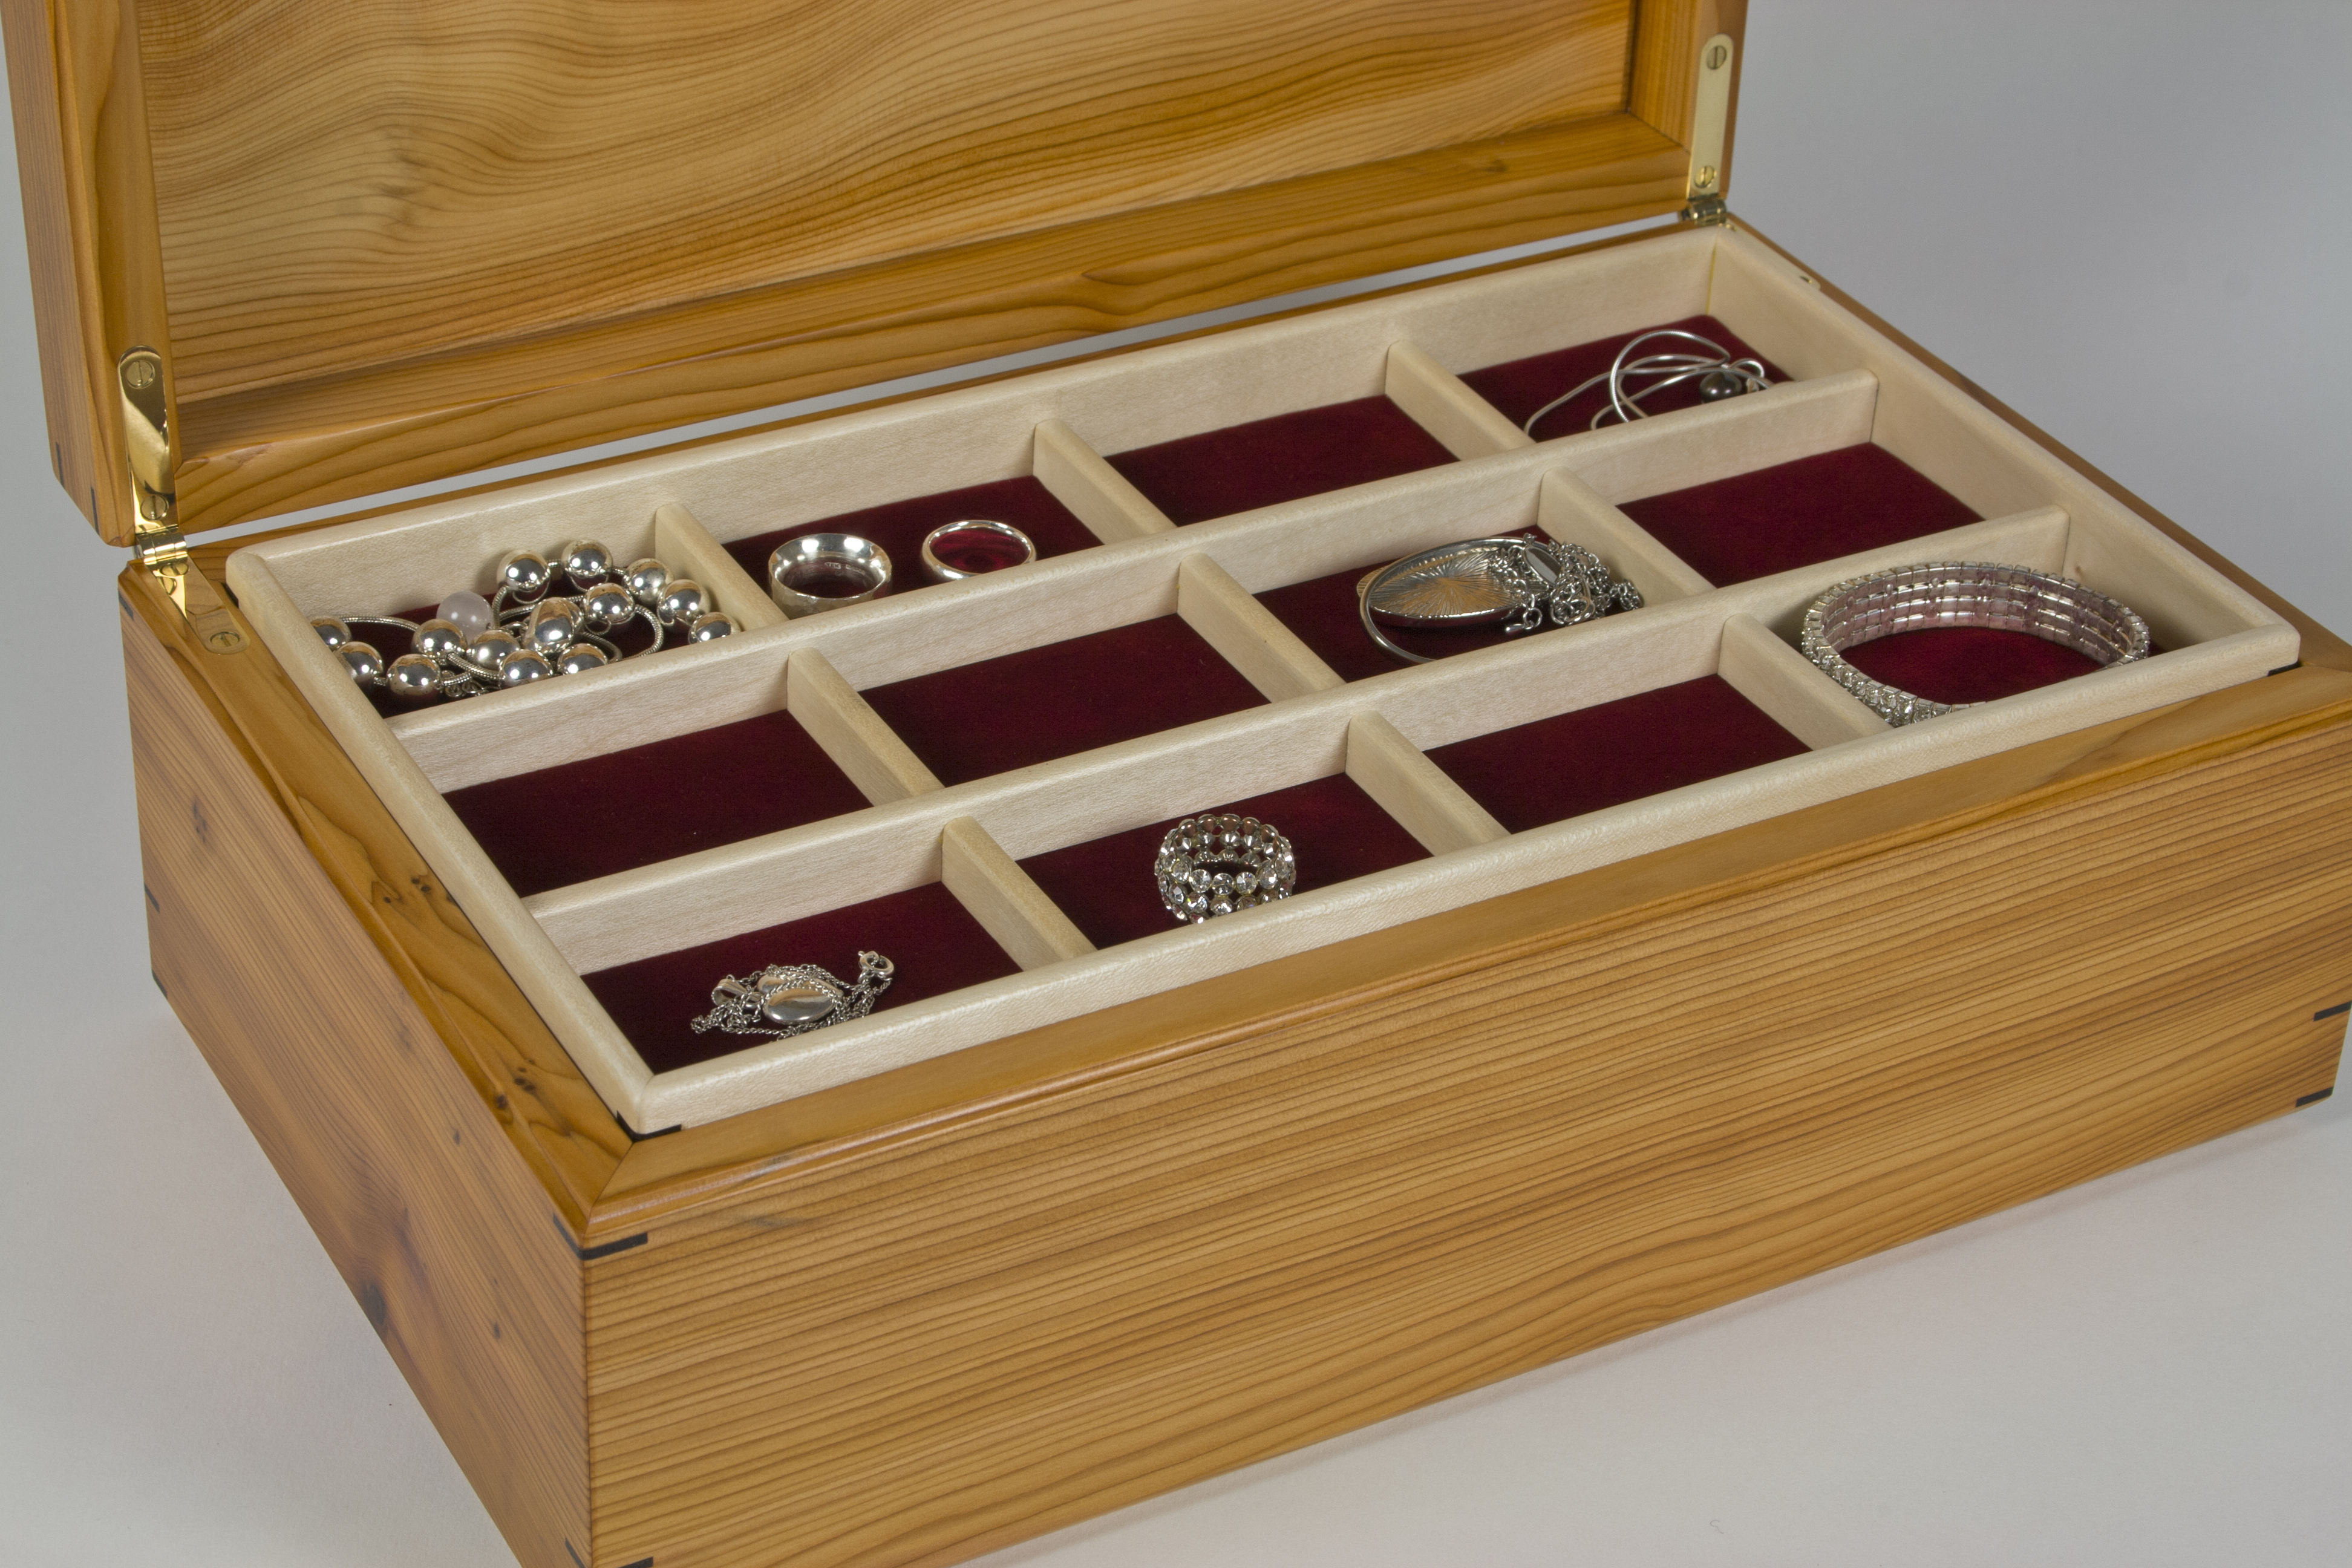 The trays with jewellery